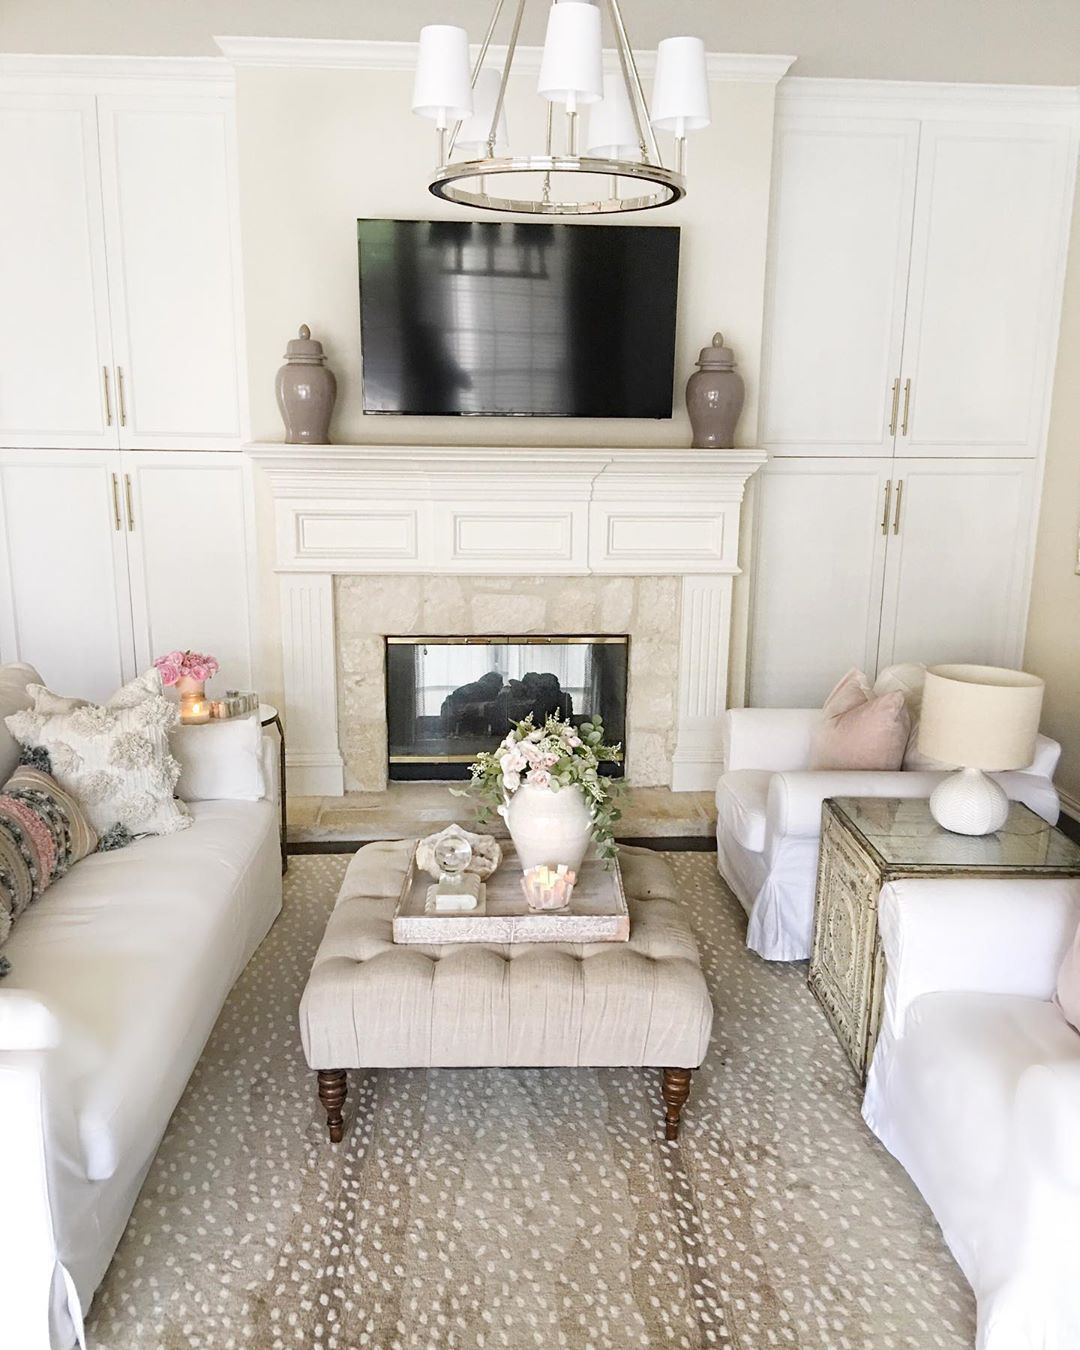 switched up my rugs in my living room this antelope print rug is so rh pinterest com